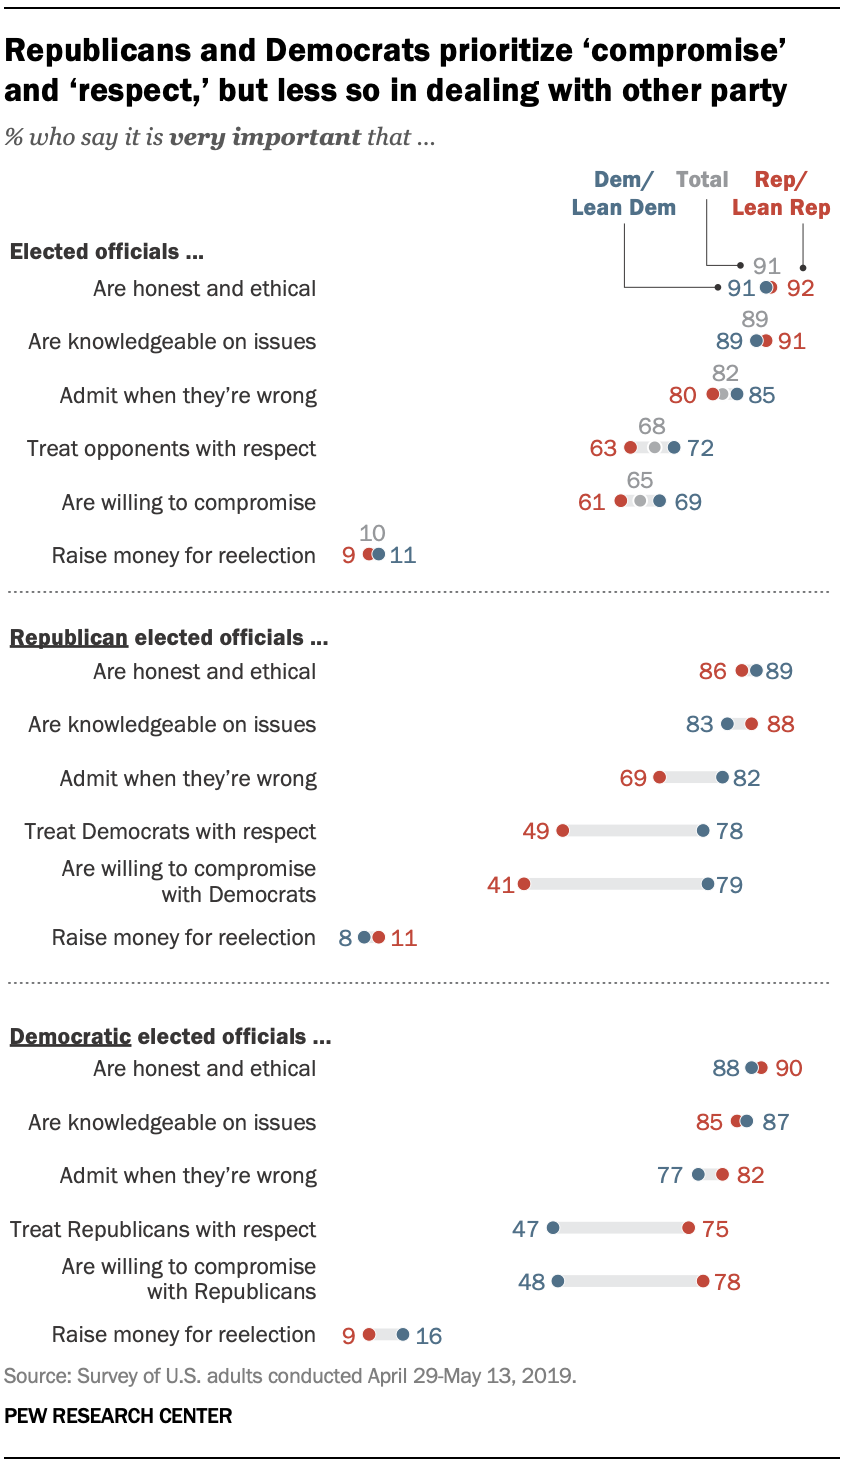 Republicans and Democrats prioritize 'compromise' and 'respect,' but less so in dealing with other party